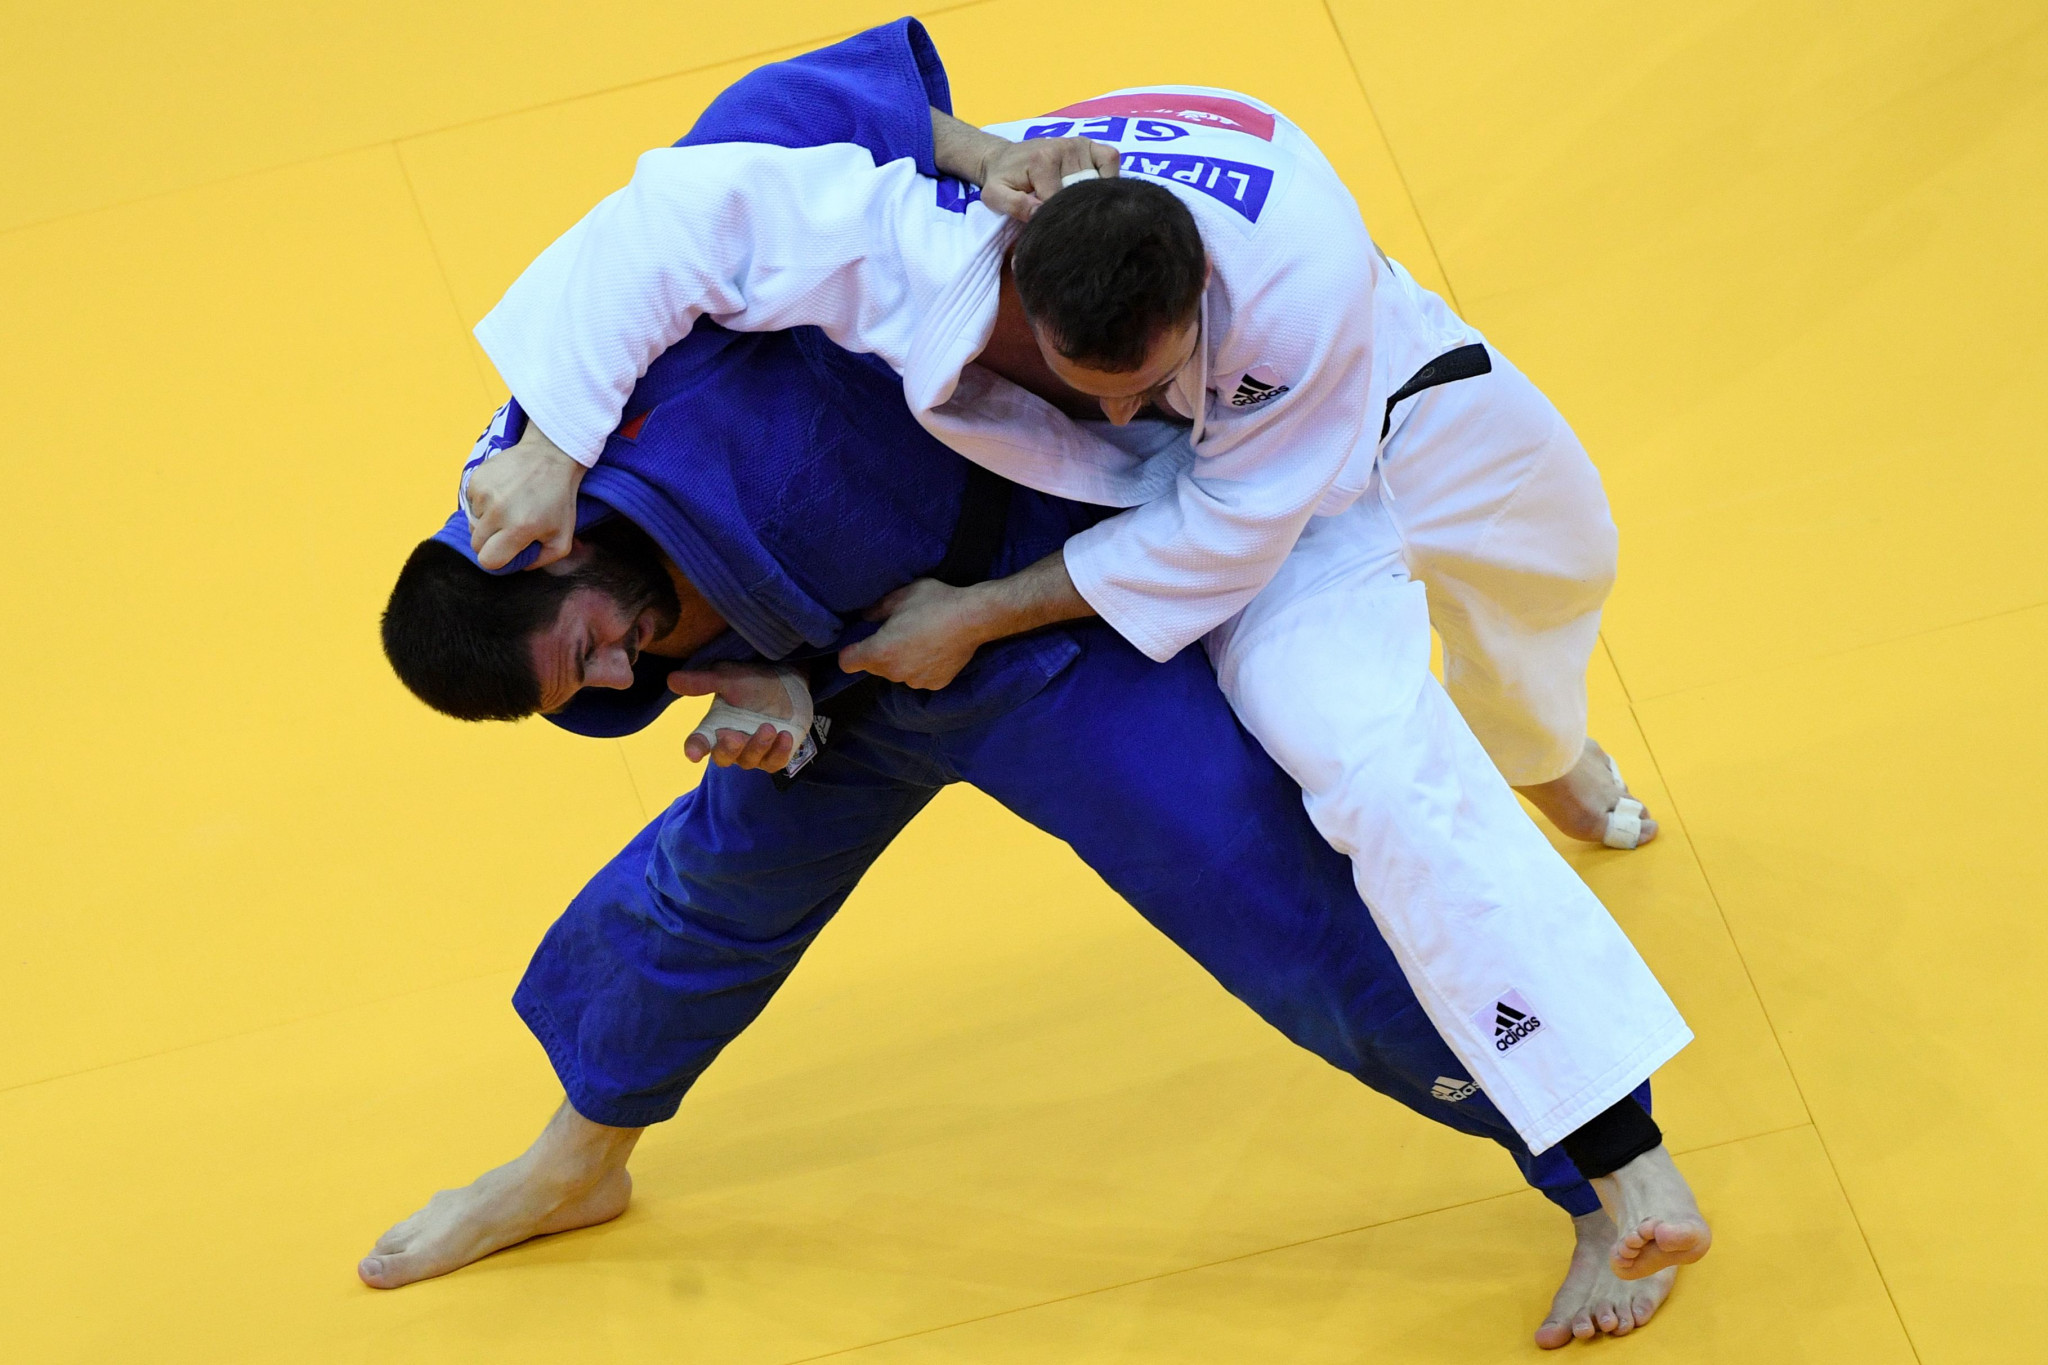 Russia's Arman Adamian stunned Georgia's Varlam Liparteliani to win the men's under-100kg final ©Getty Images